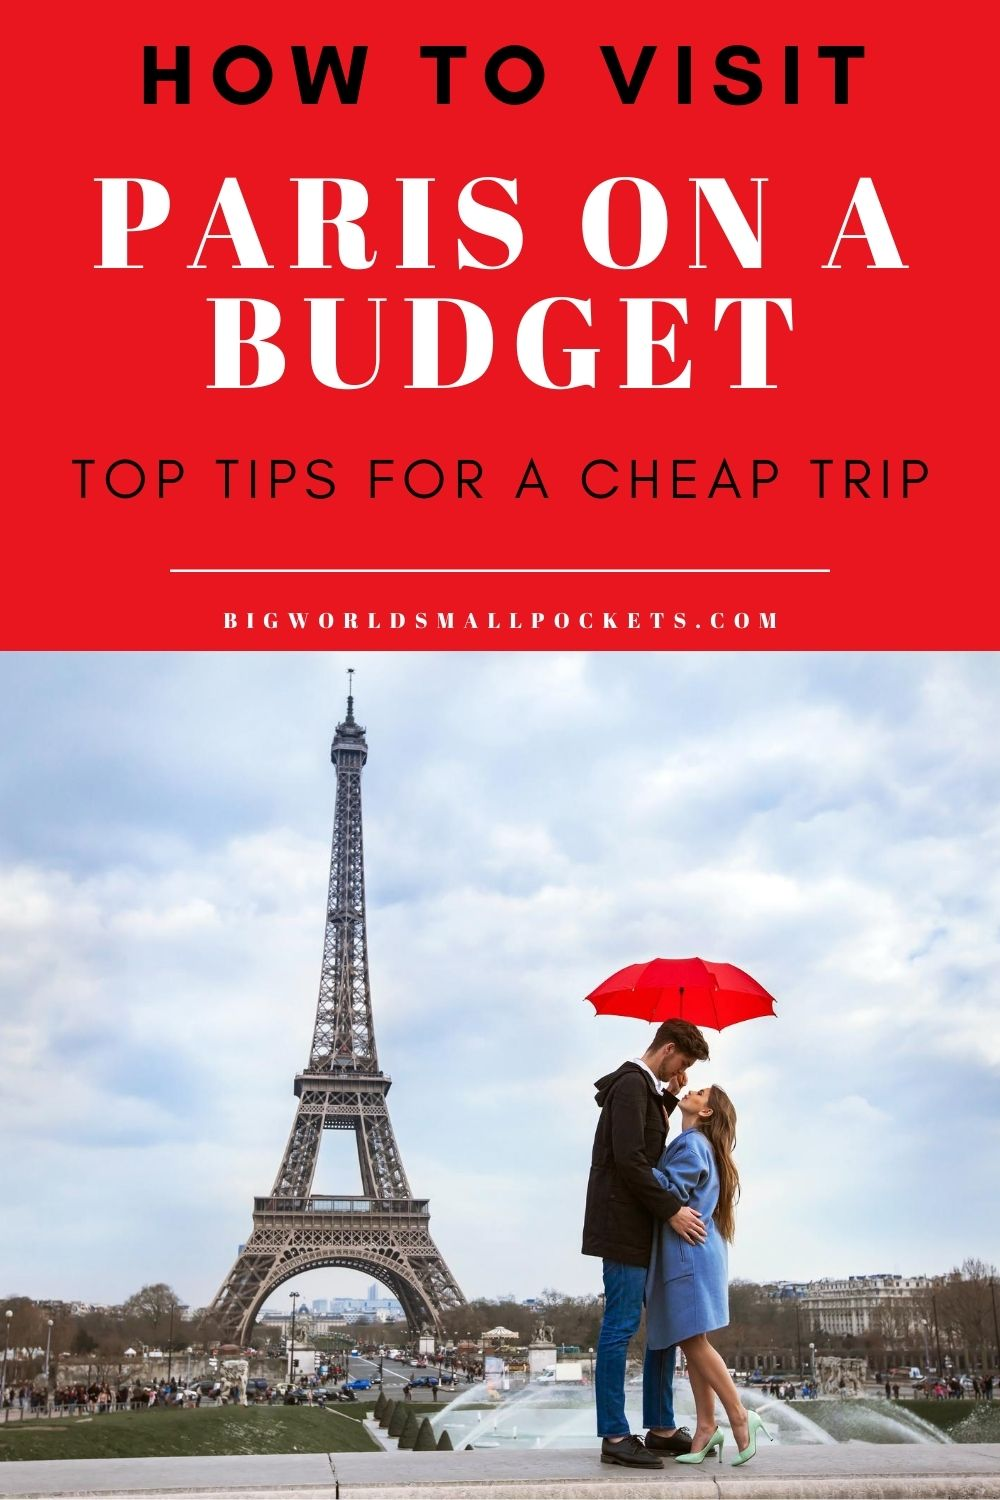 How to Visit Paris on a Budget Top Tips for a Cheap Trip